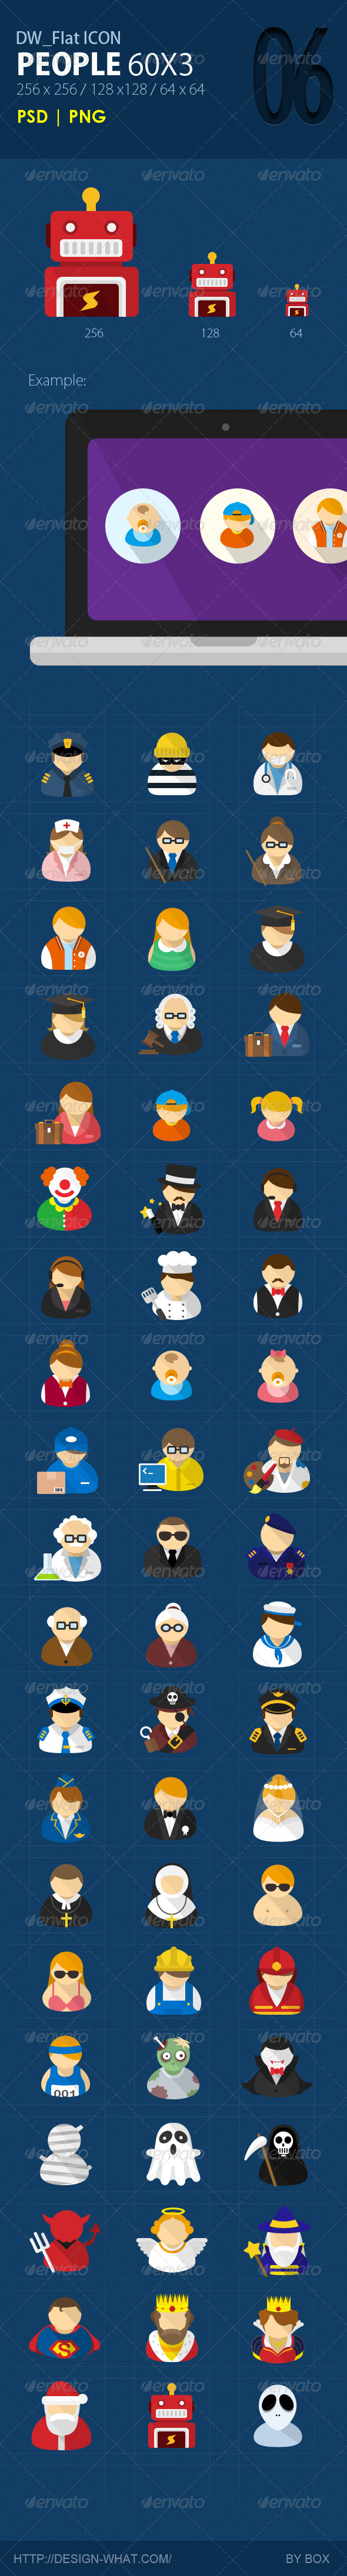 GraphicRiver 60 Flat ICONs People 5800629